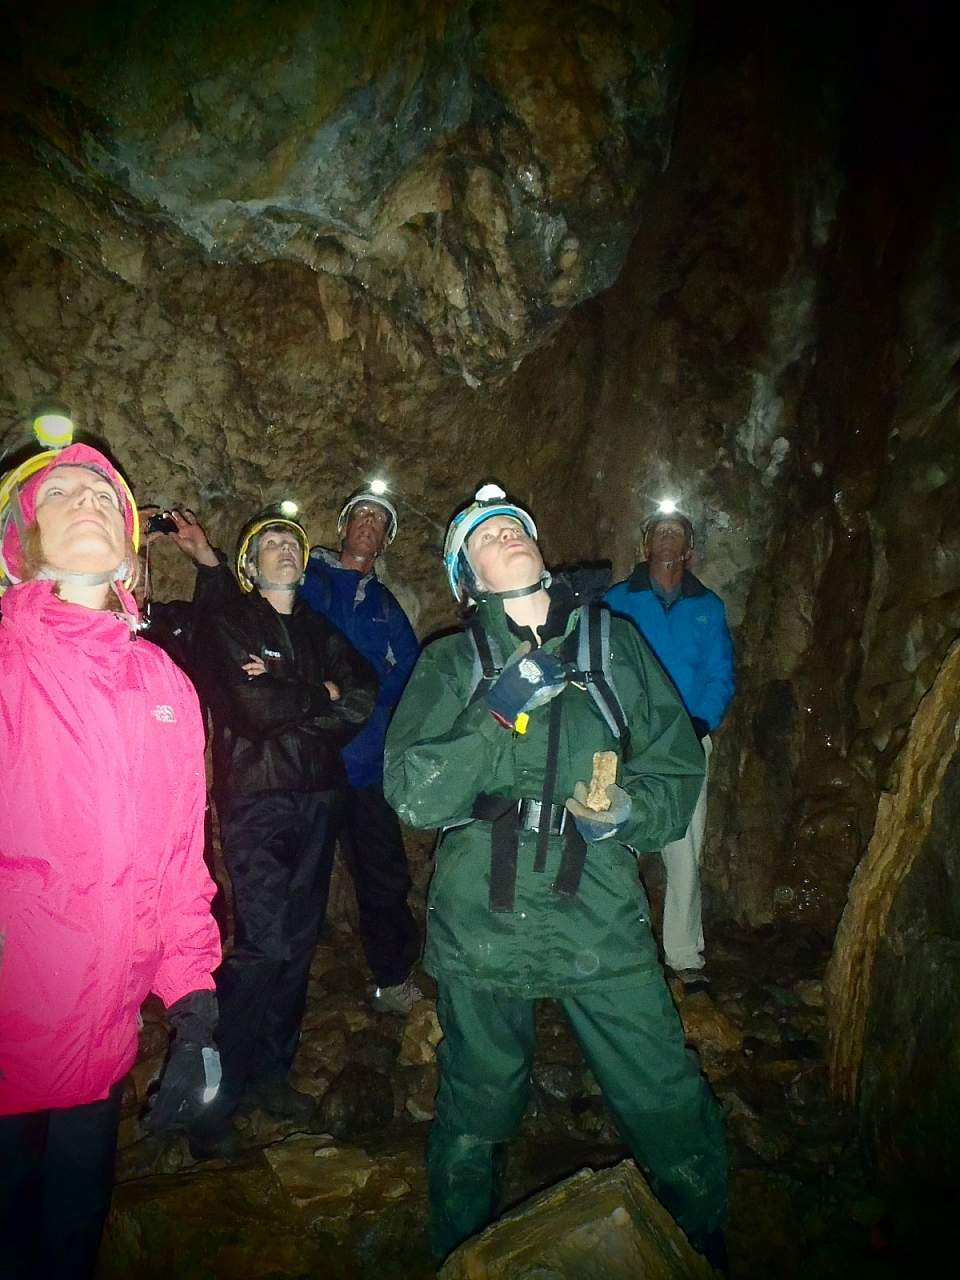 A group of people with headlamps exploring El Capitan Cave.